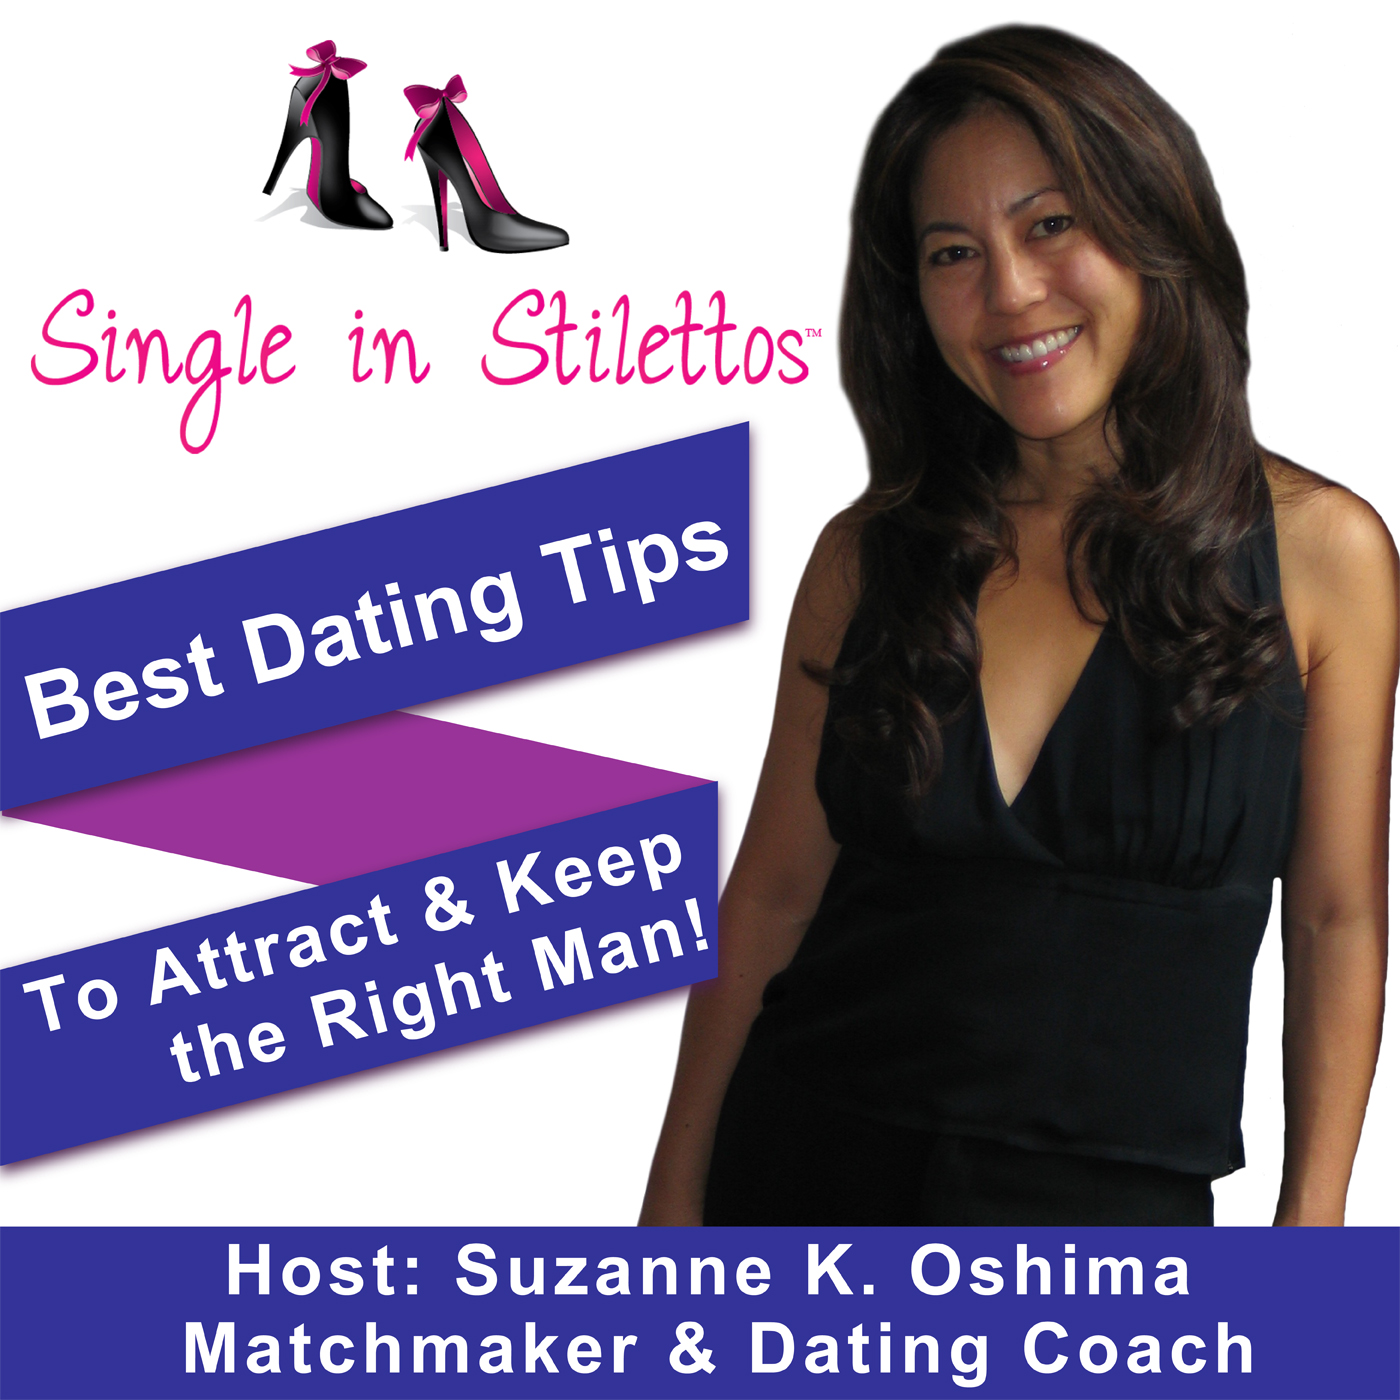 dating 40s advice Online dating tips for success in your 40s, 50s and 60s.